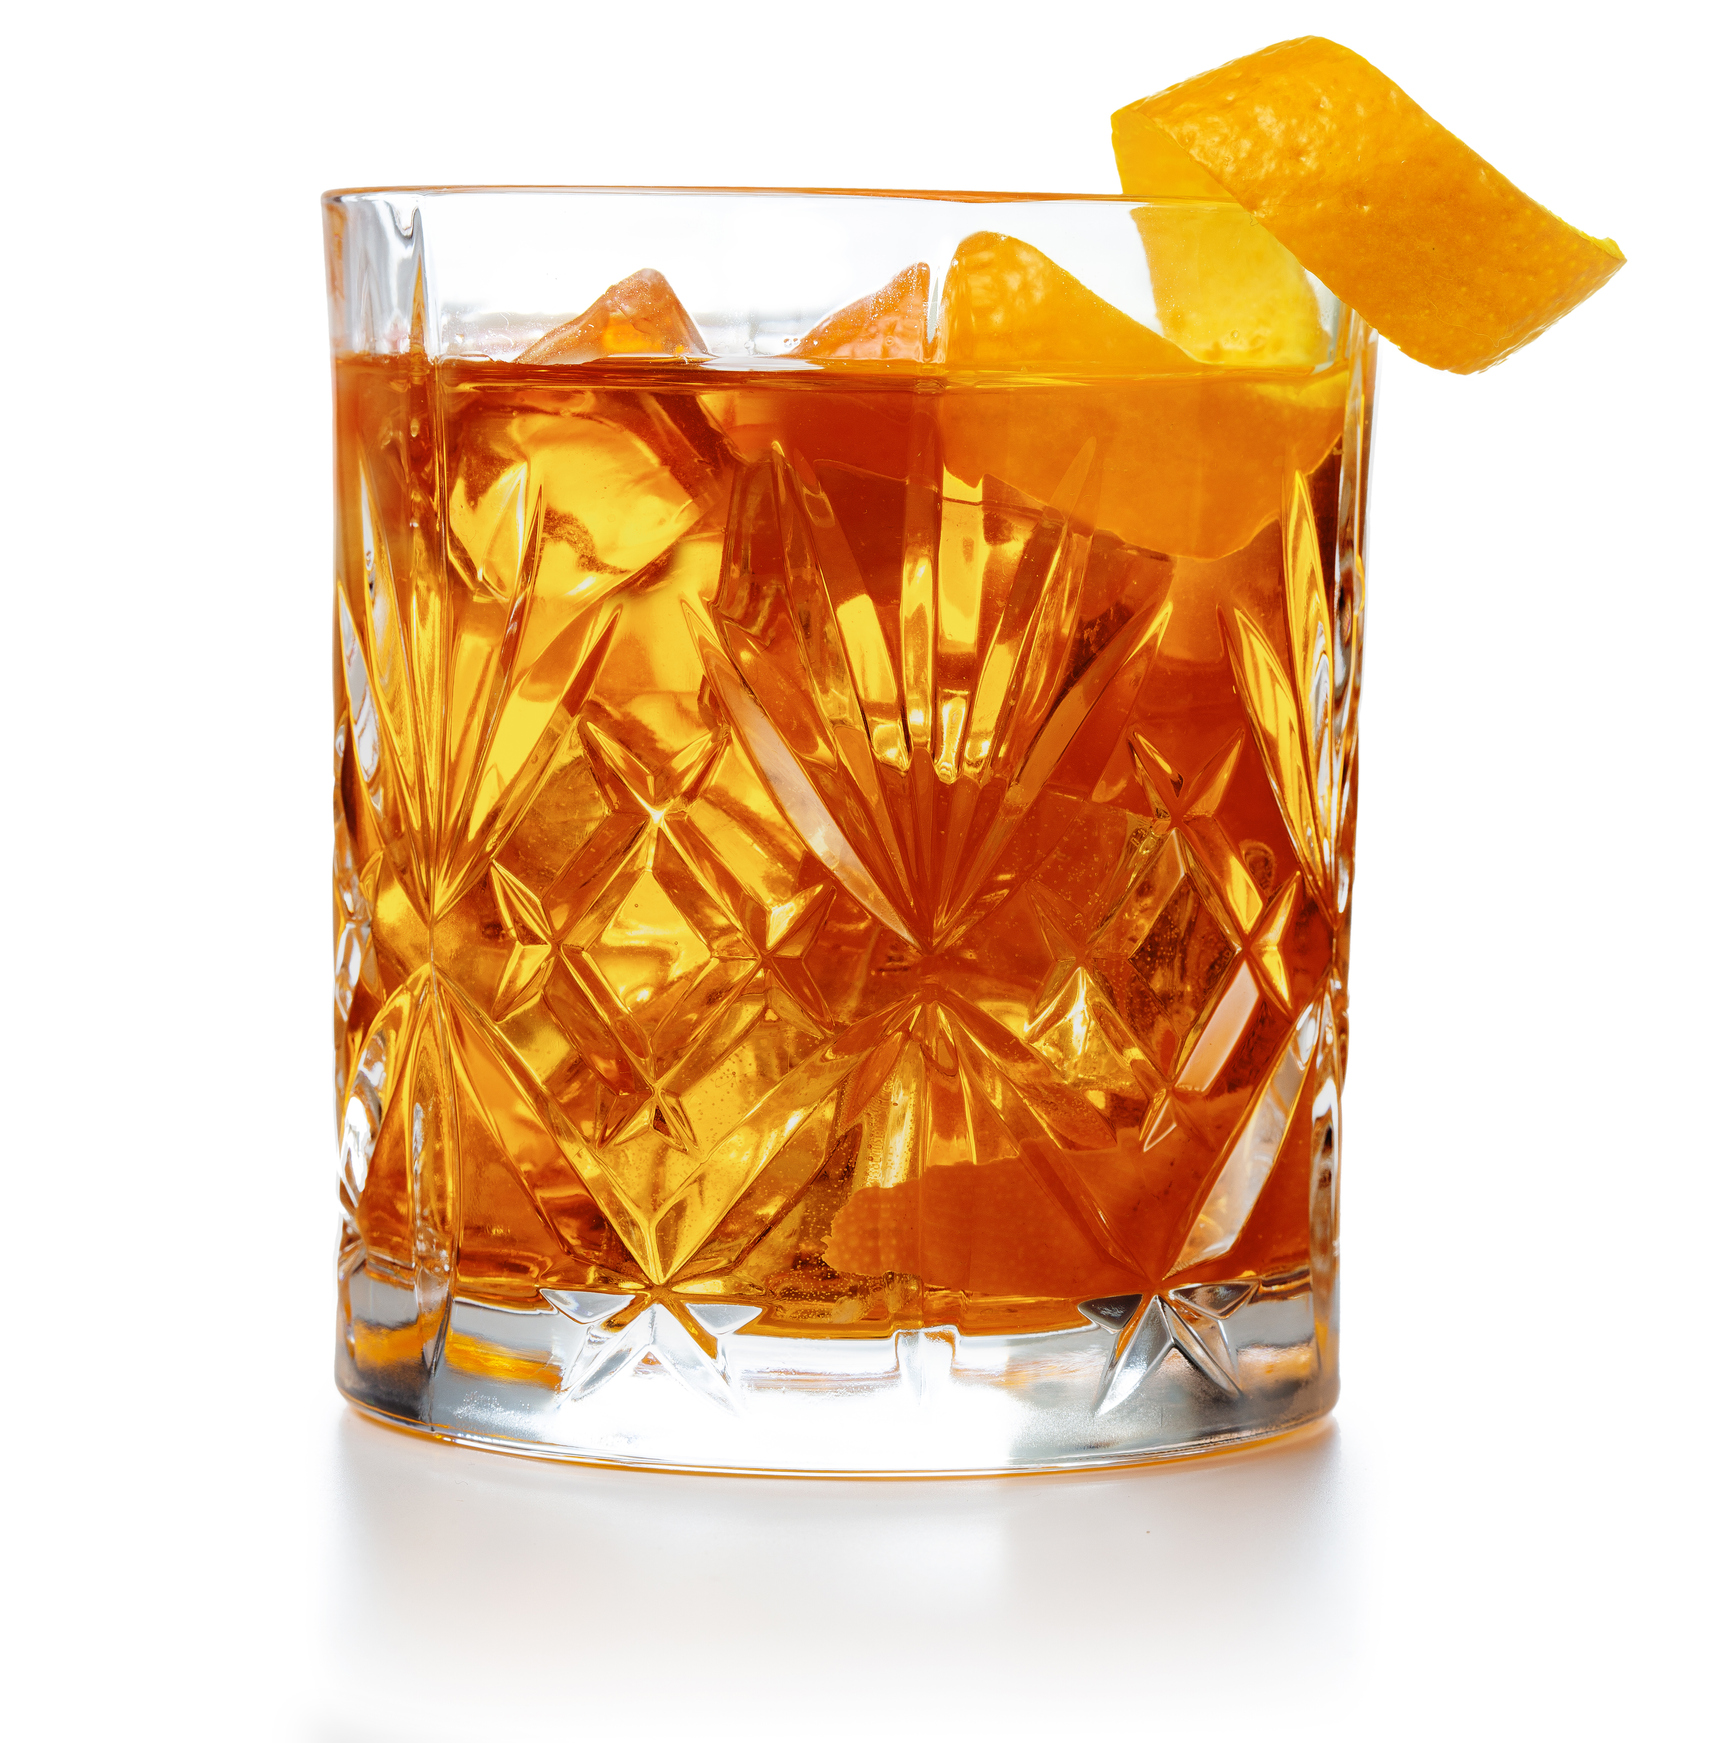 6. Old-Fashioned